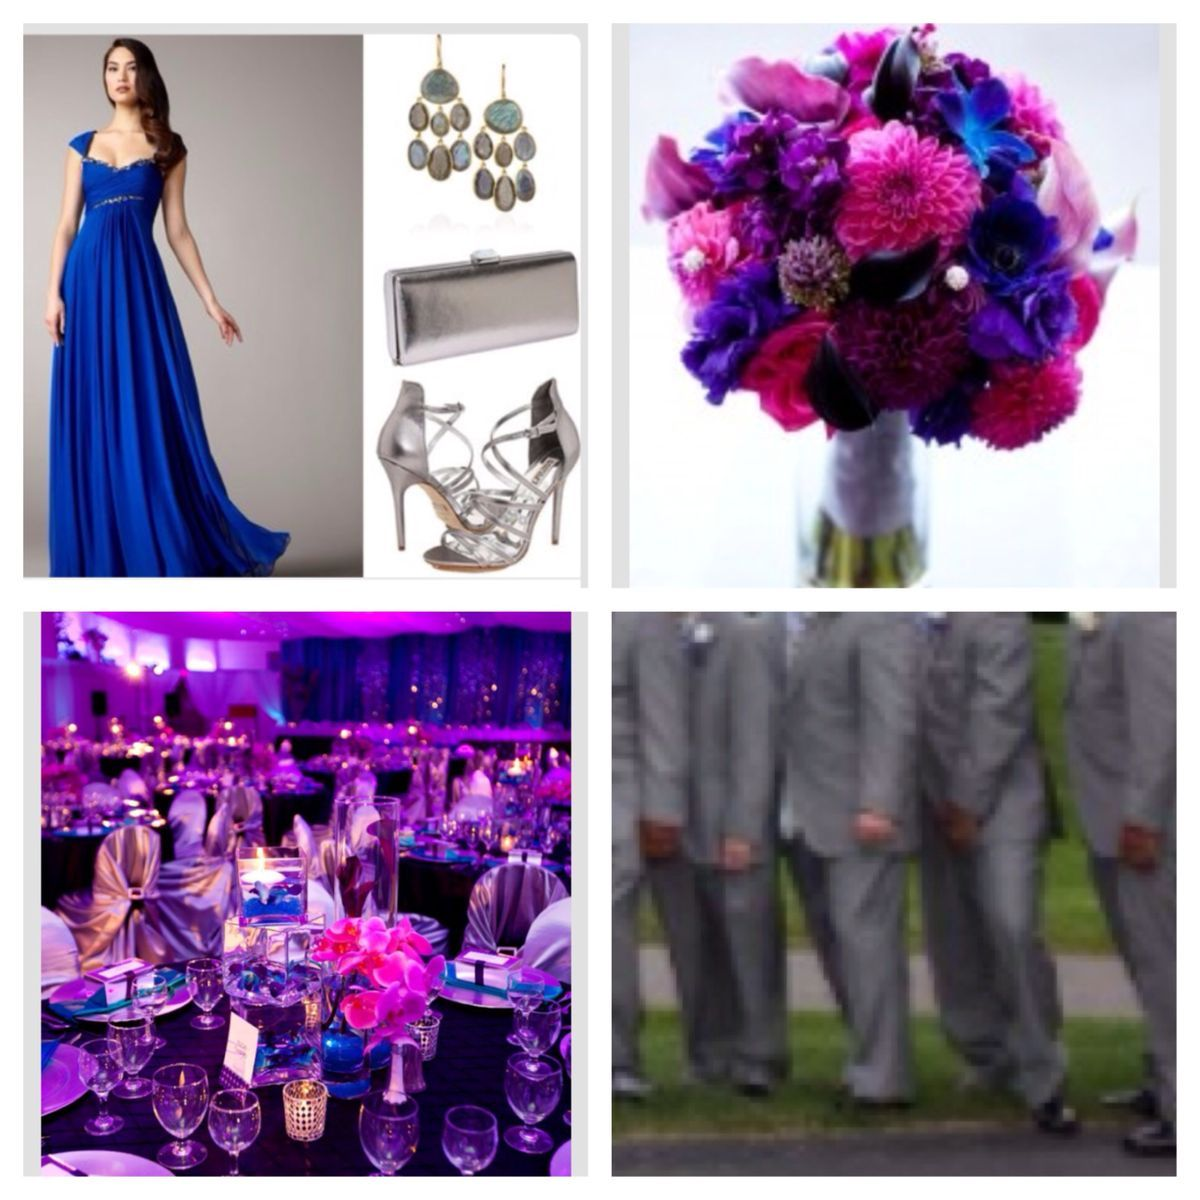 Wedding Pallet Cobalt Blue Fuchsia Royal Purple With Accents Of Silver Crystals And Other Lighter Shades Pink